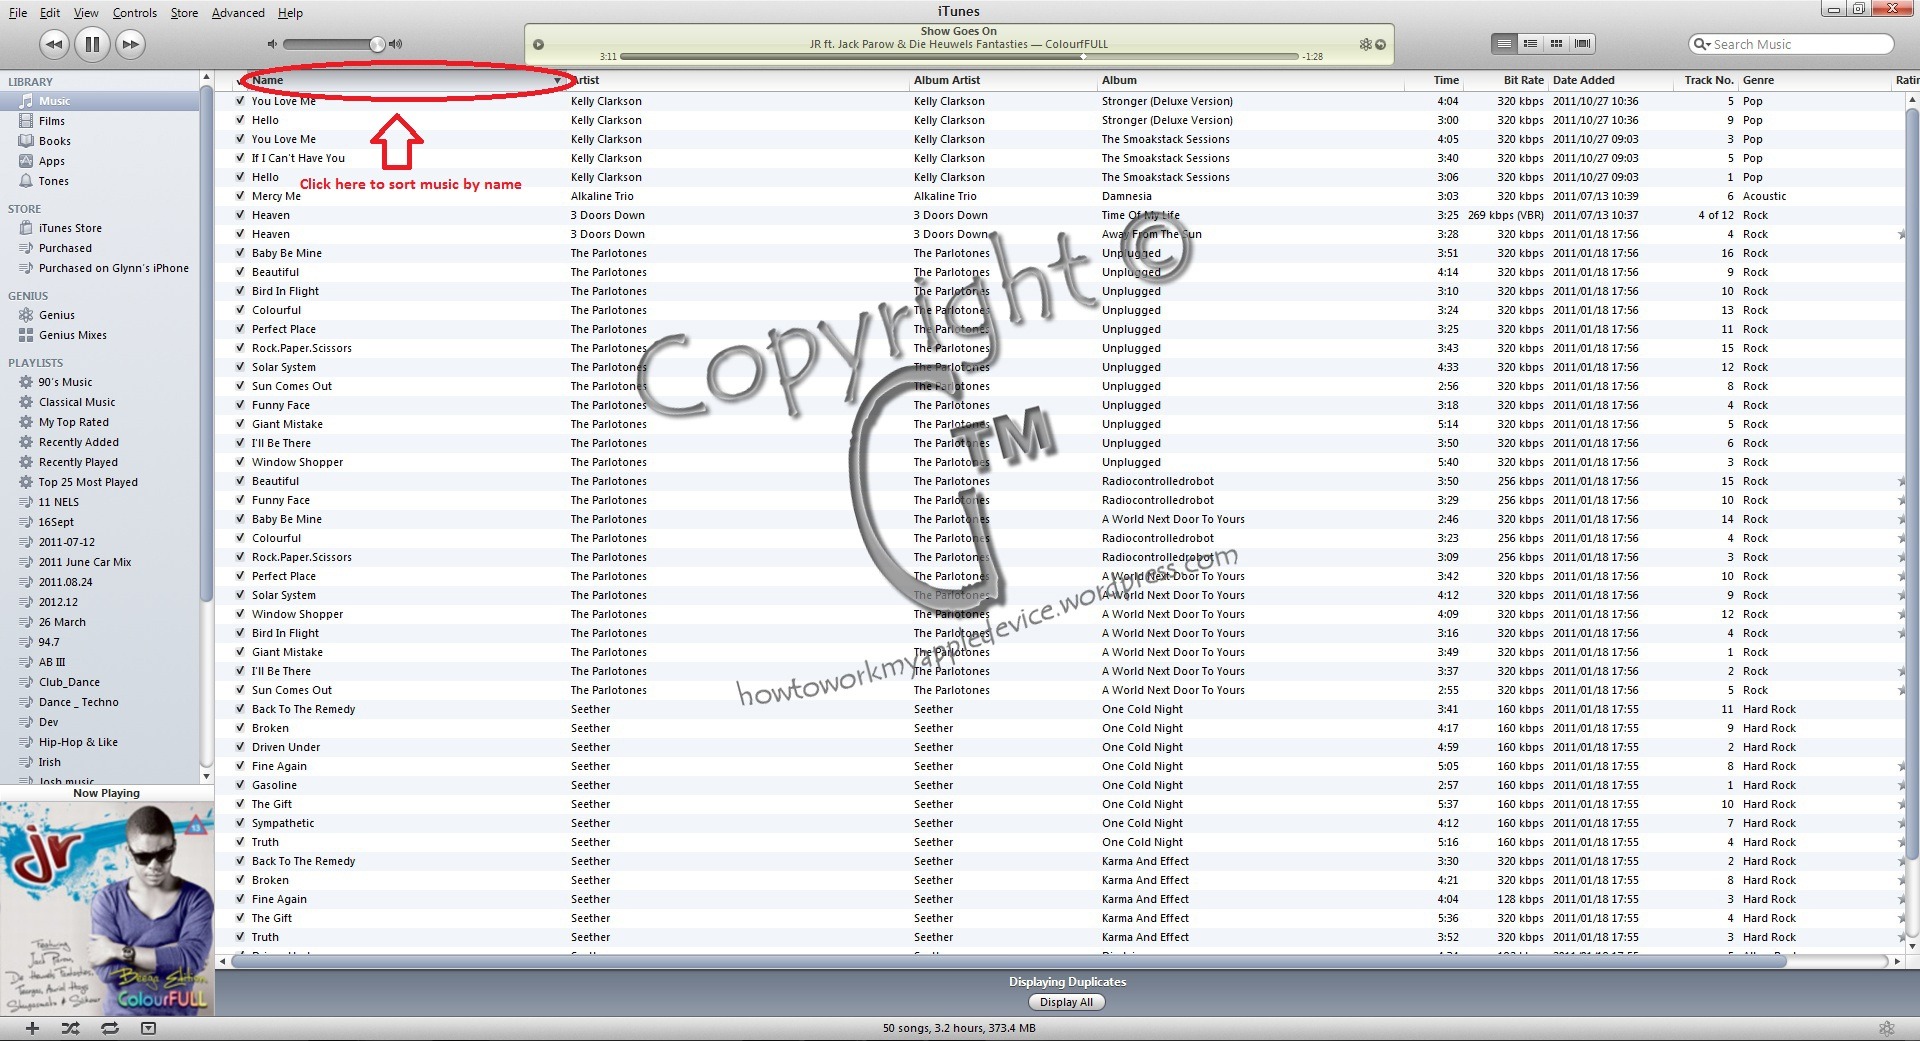 how to delete multiple duplicate songs in itunes